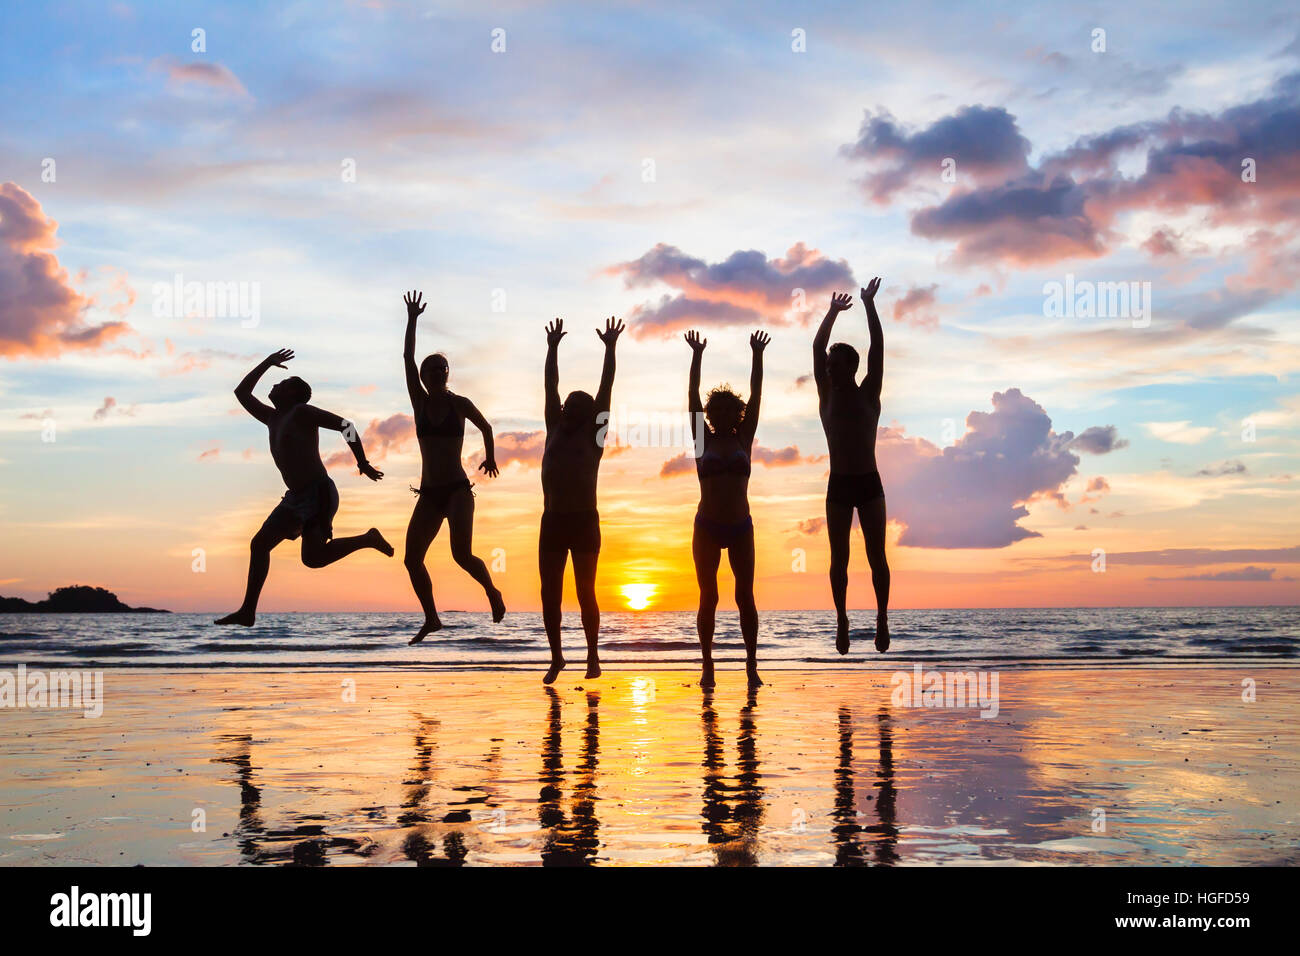 group of people jumping on the beach at sunset, silhouettes of happy friends on holidays - Stock Image